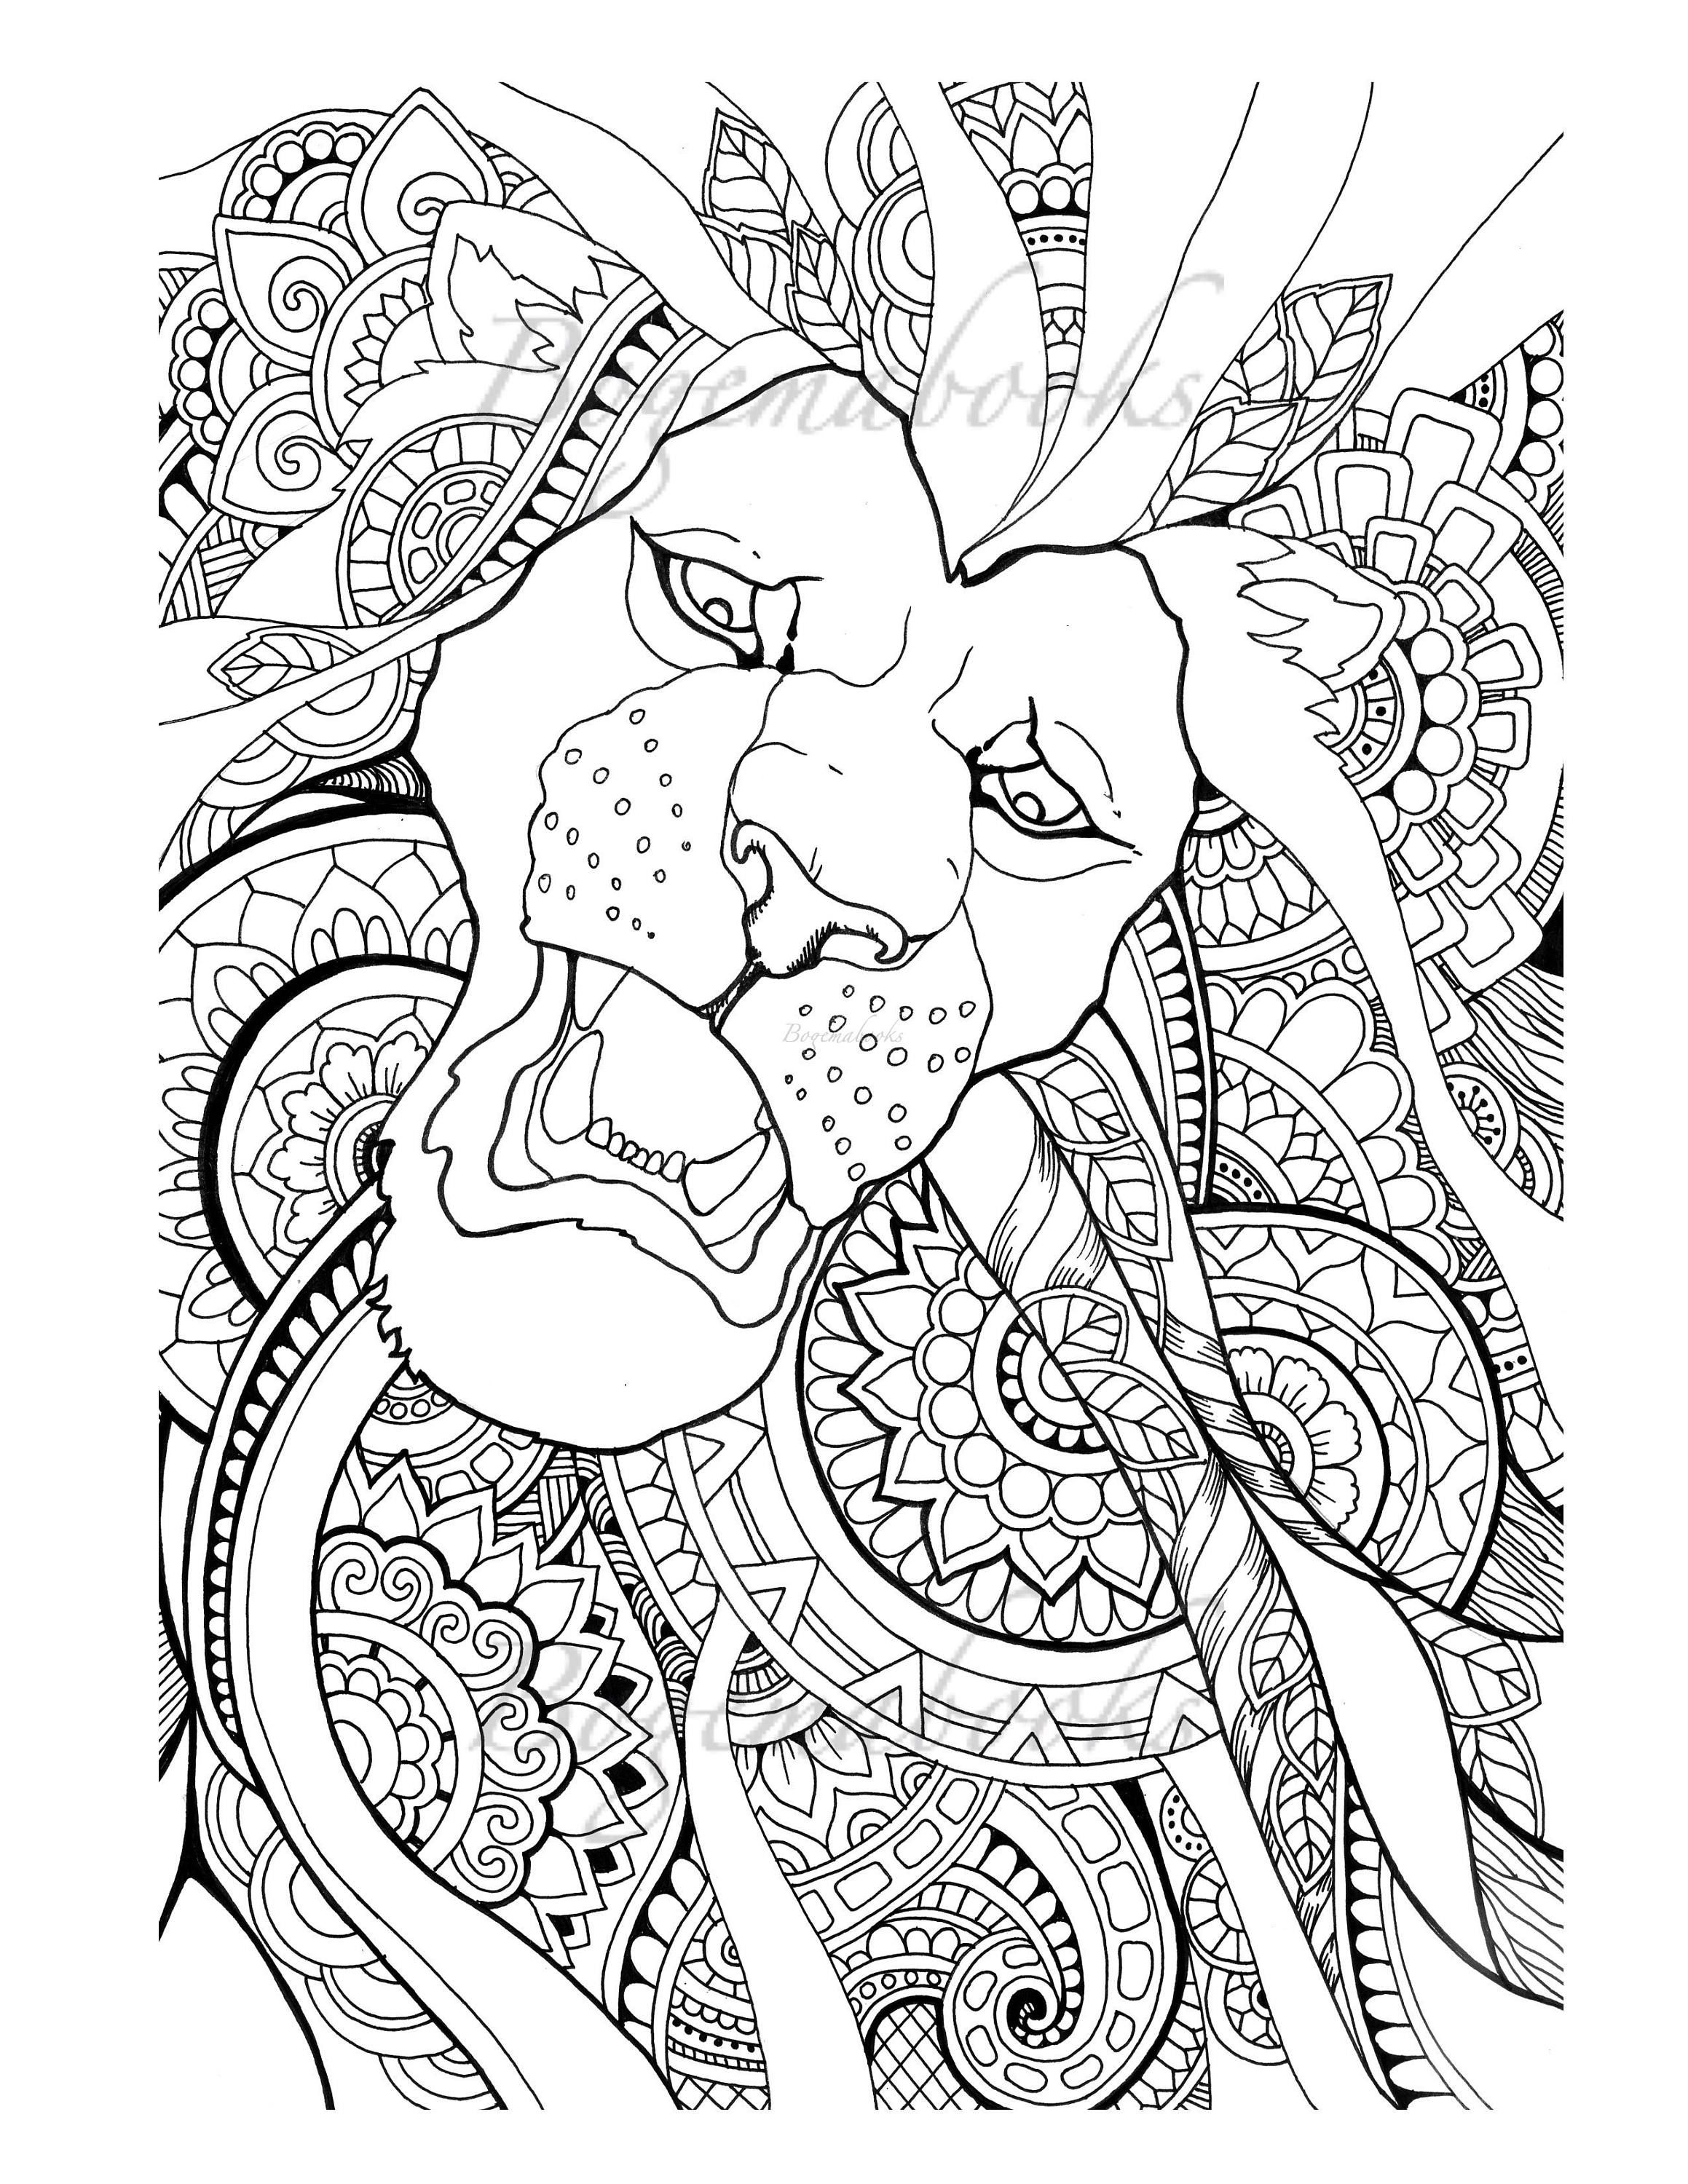 - Great Lions (Adult Coloring Books, Digital Coloring Pages